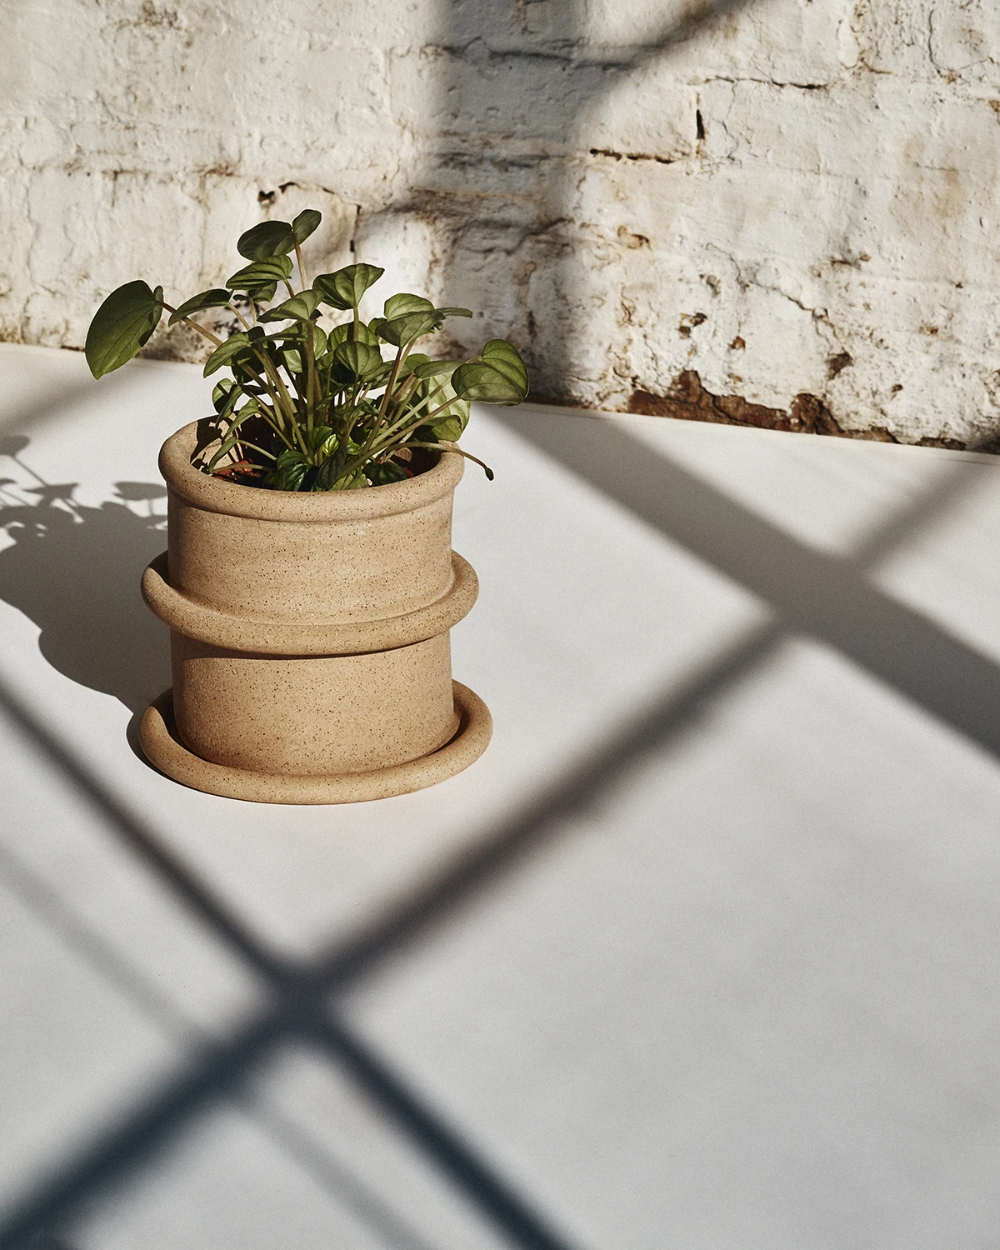 Chunky Coil Planter, Speckled: SIN ceramics - Handmade in Brooklyn – SIN | Home goods